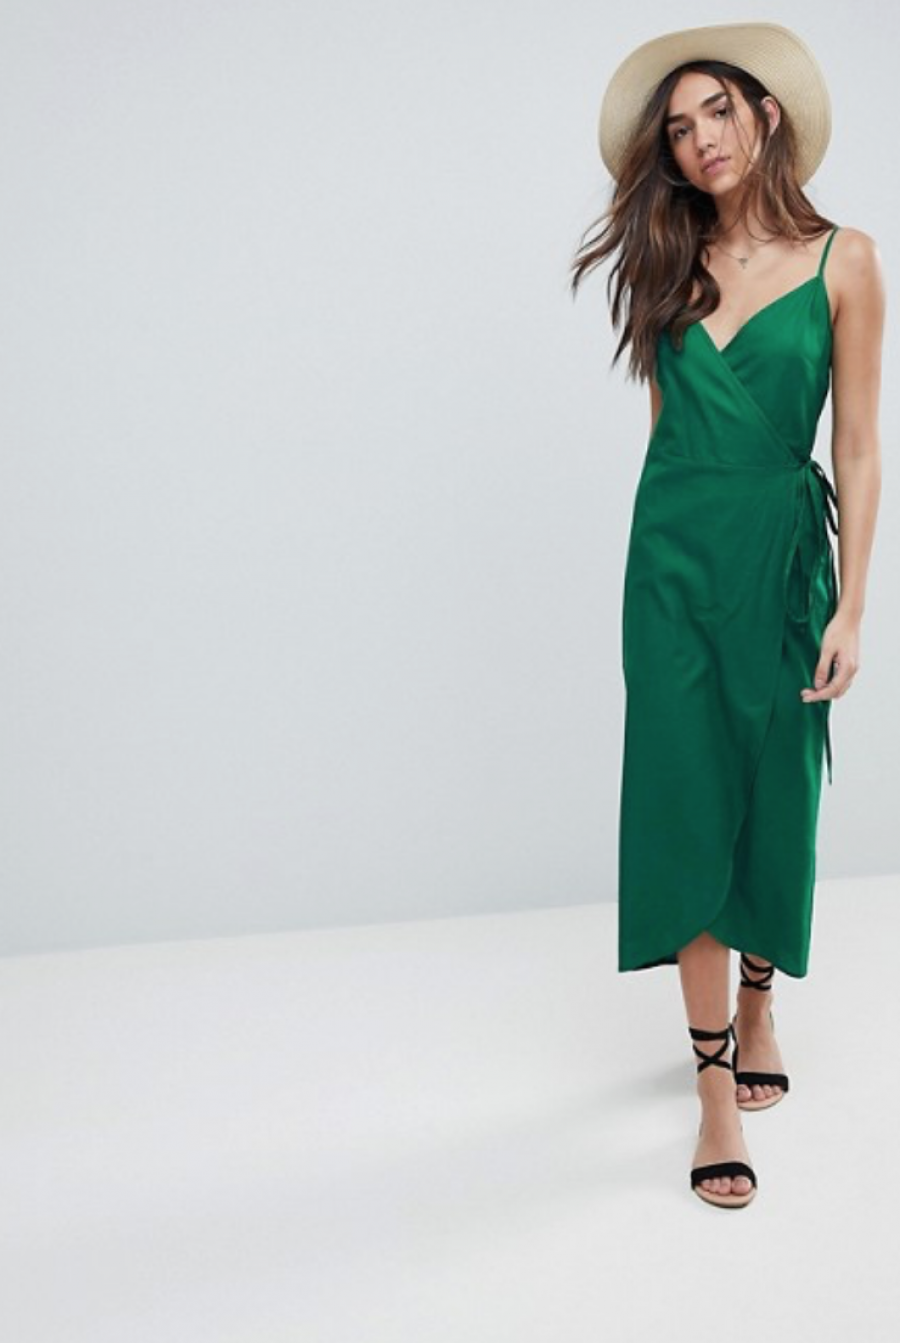 See Need Want Fashion Linen Dress Asos Design